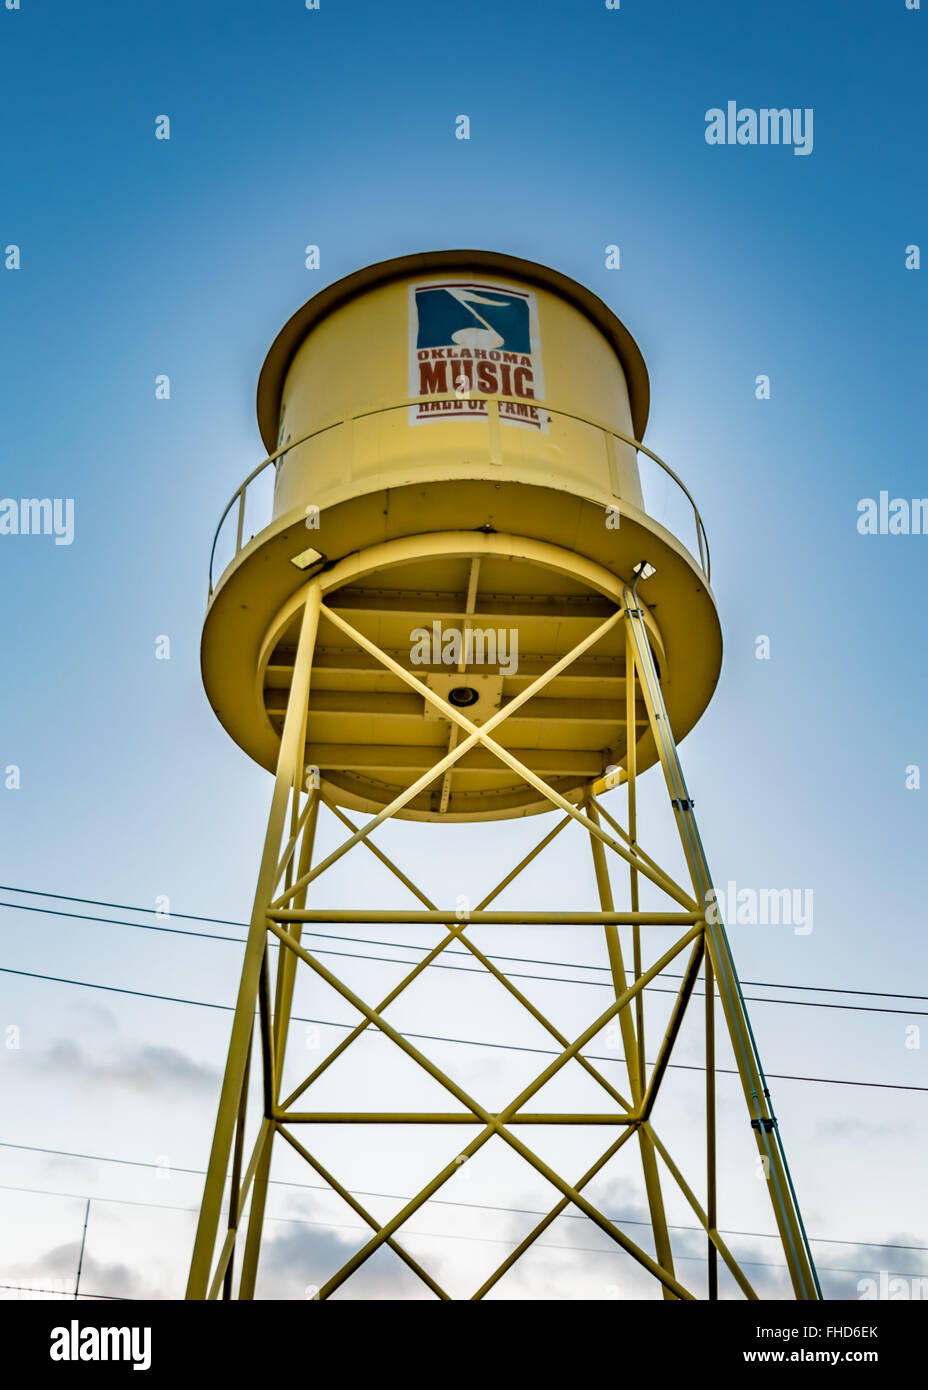 Water Tower that serves as the welcoming sign and landmark of the Oklahoma Music Hall of Fame in Muskogee Stock Photo